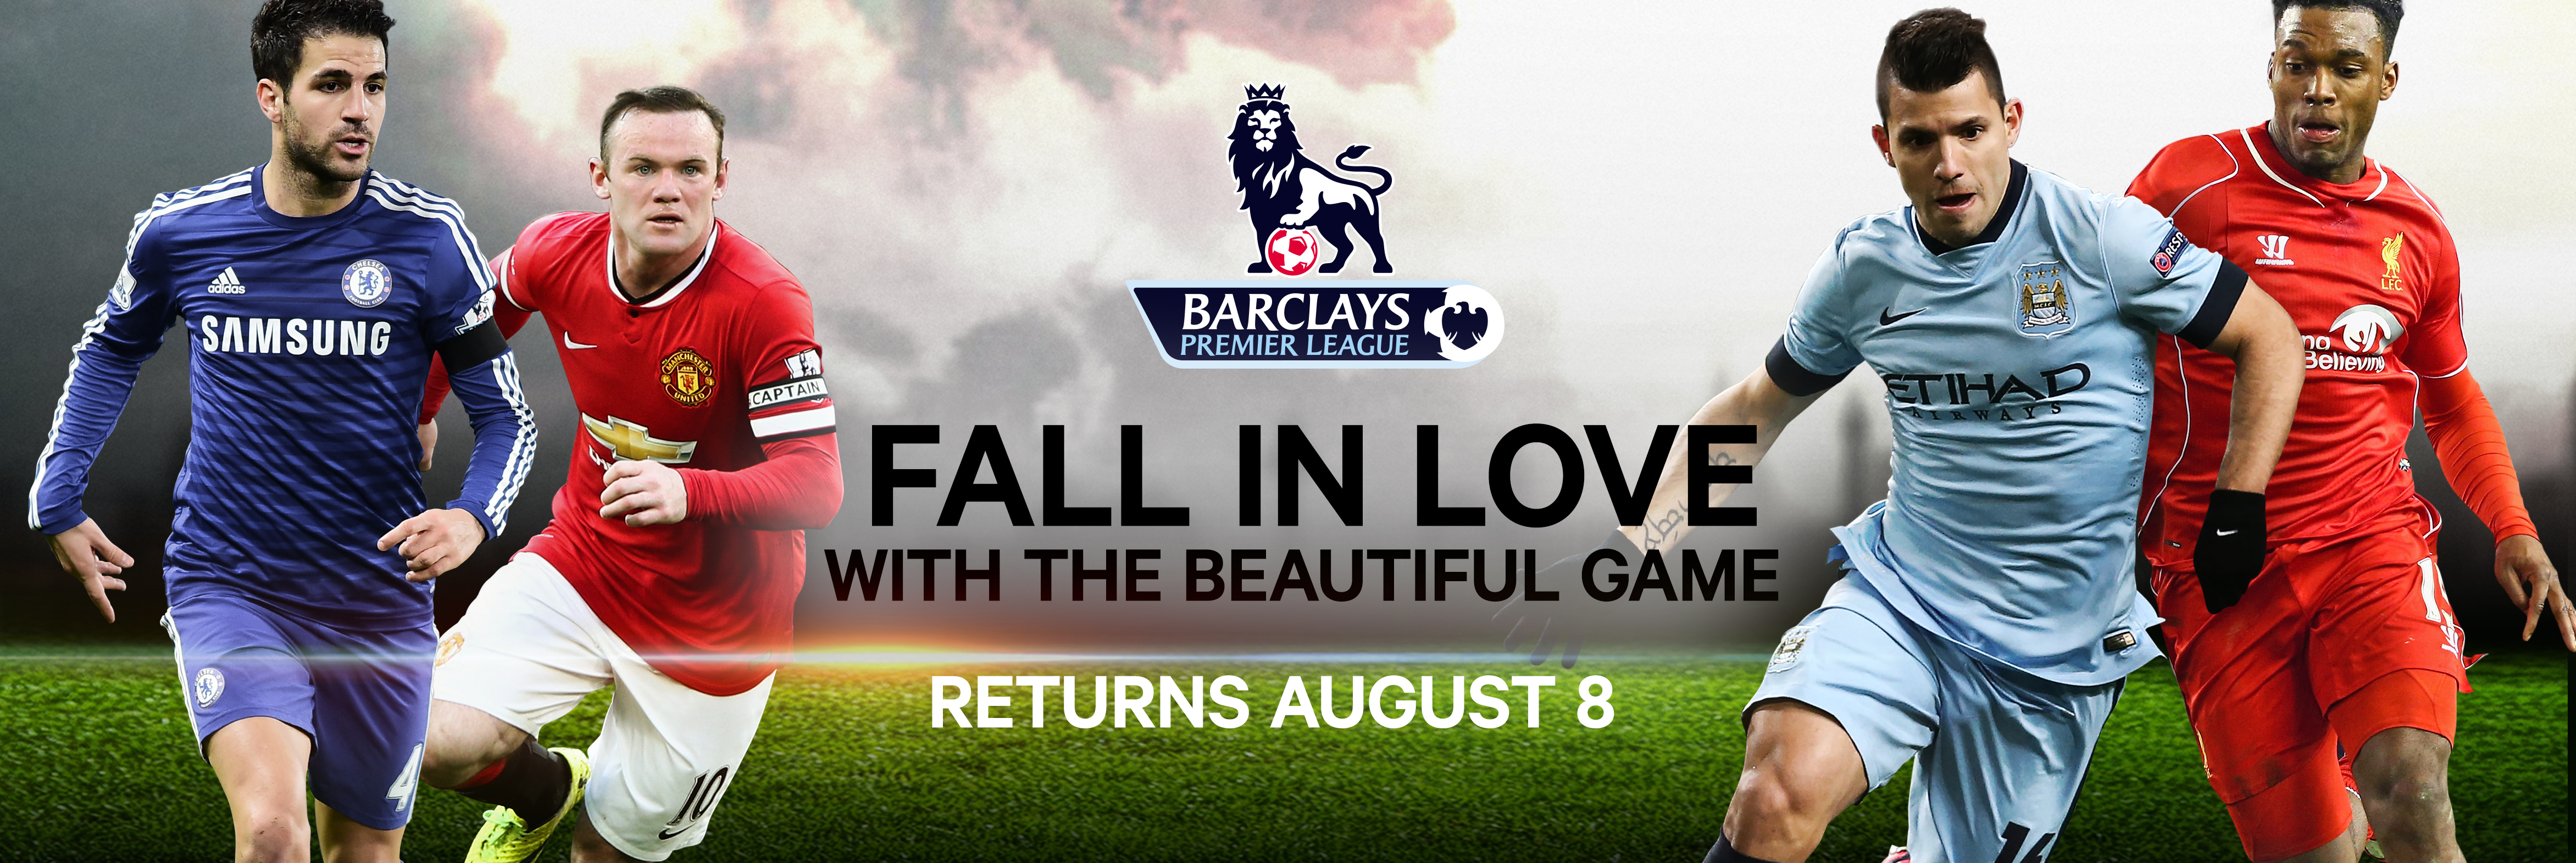 BPL TWITTER COVER PHOTO